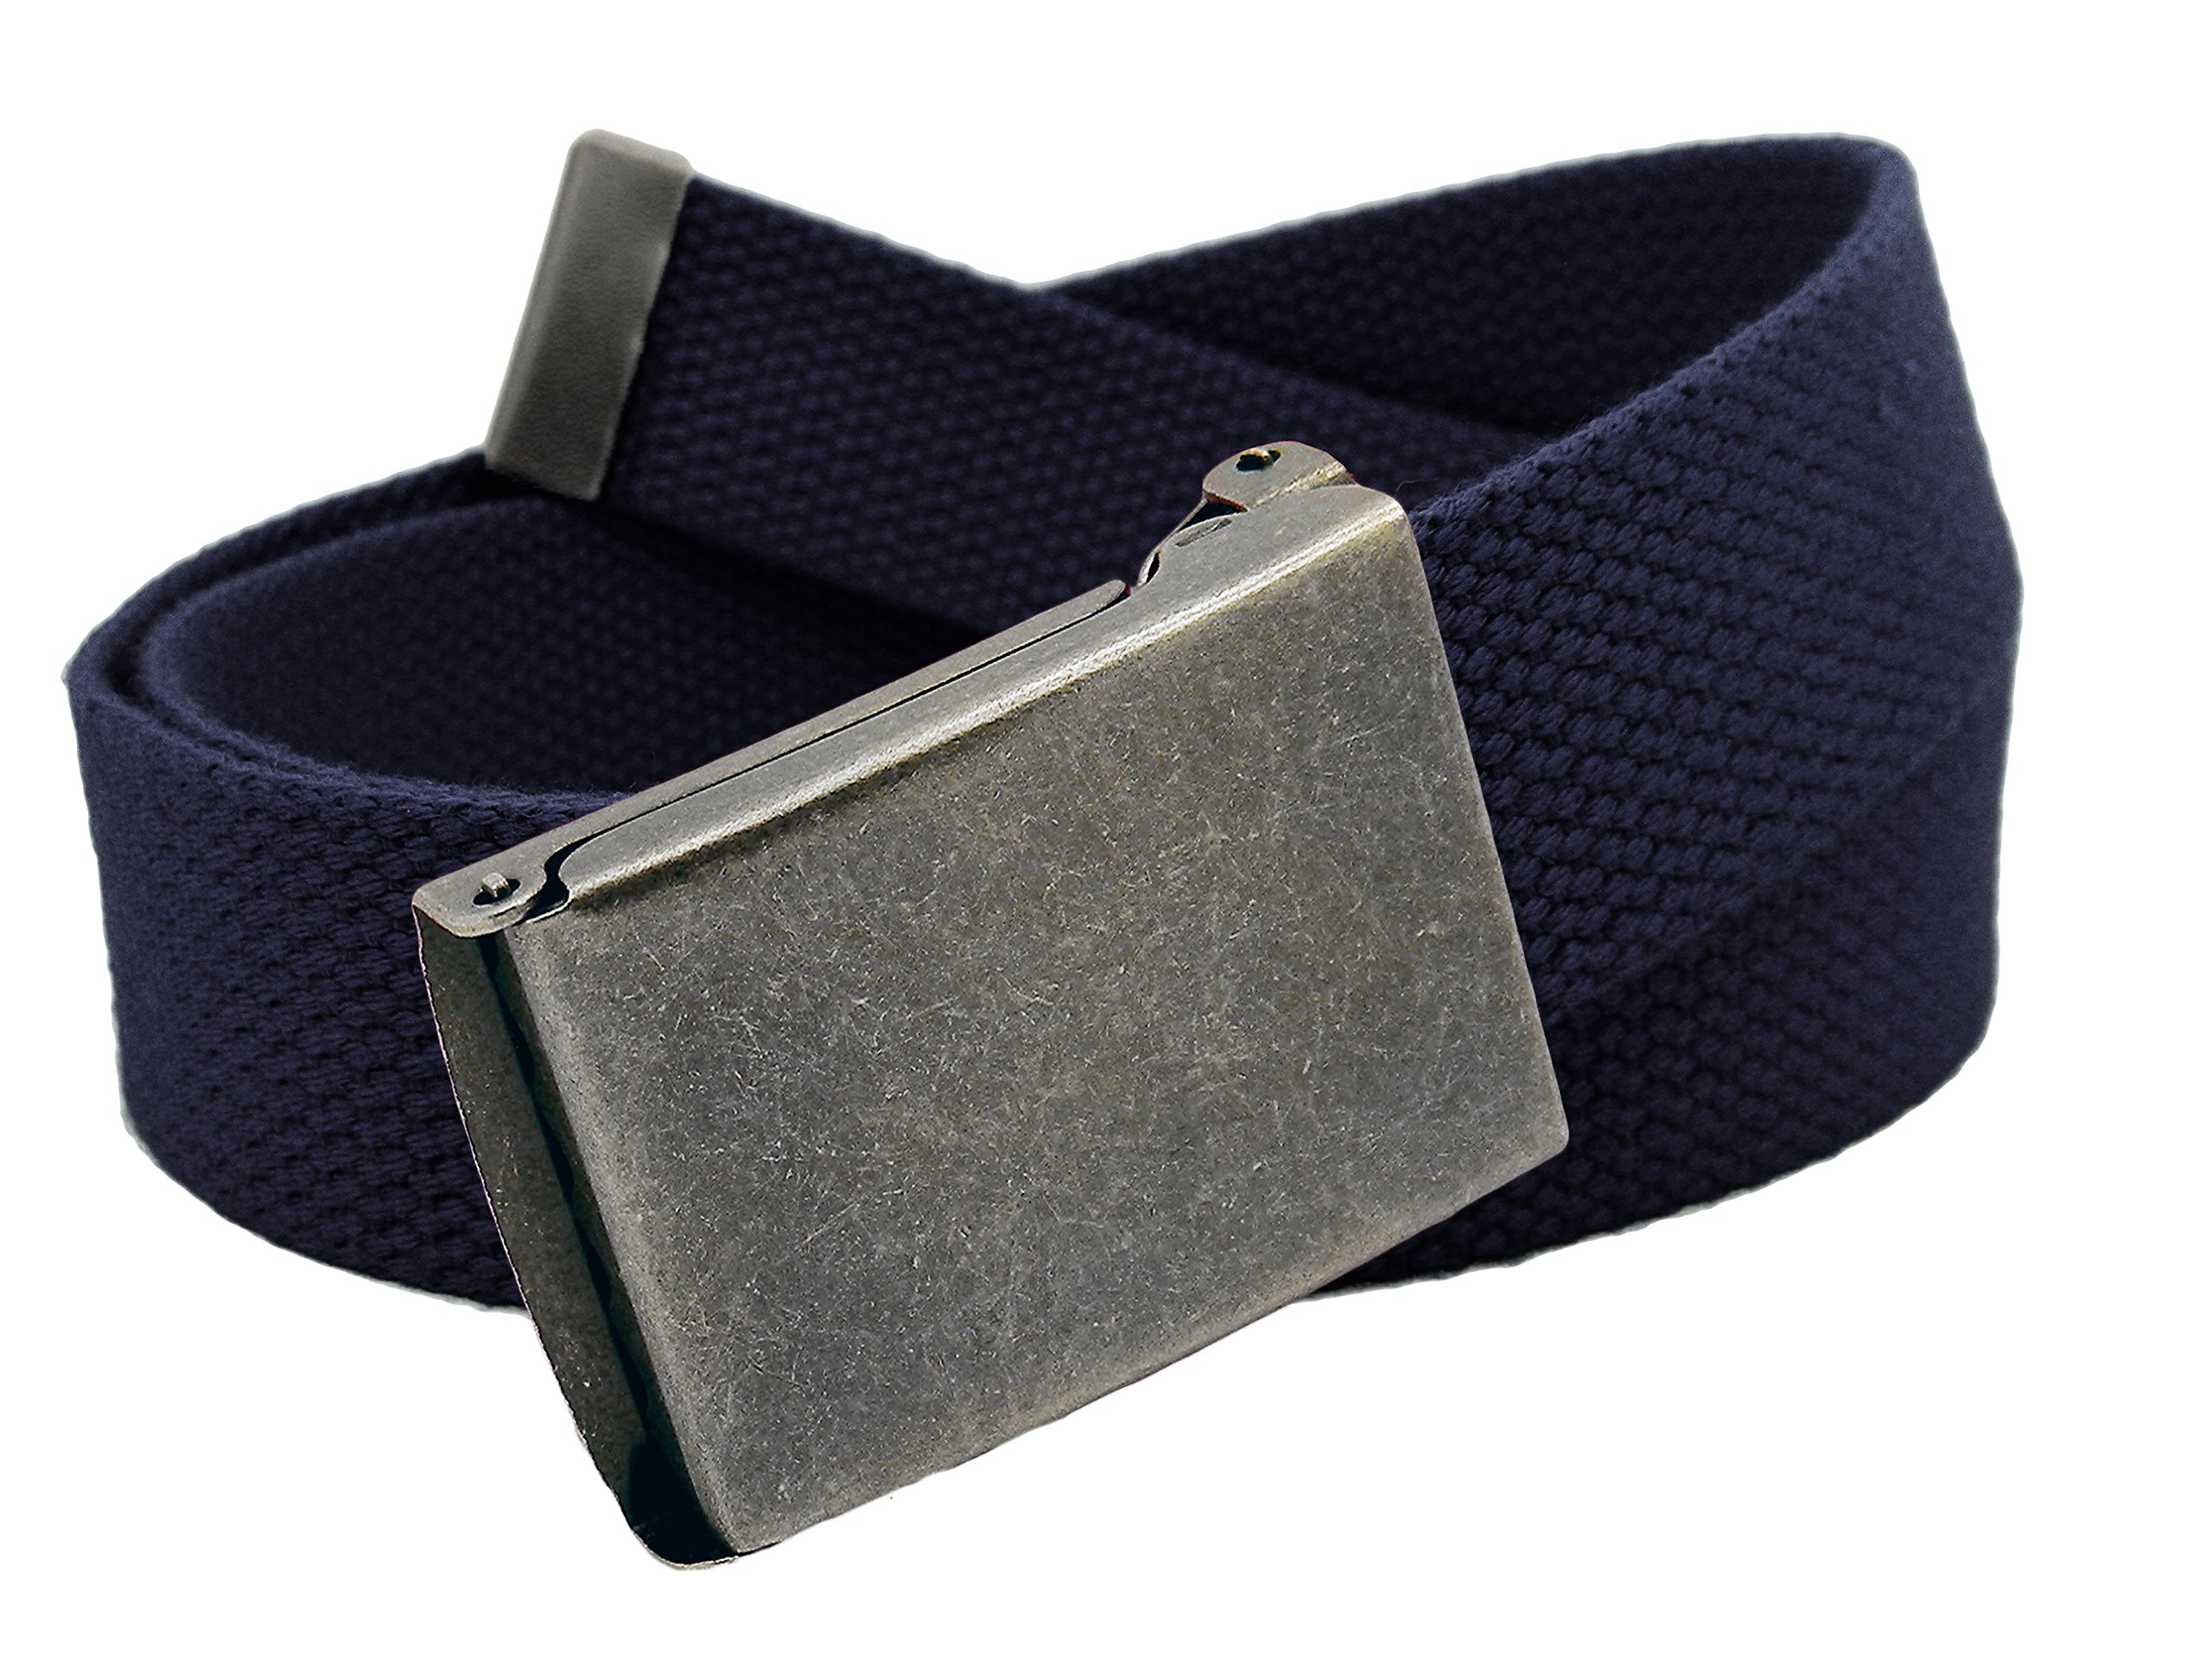 Boys School Uniform Distressed Silver Flip Top Military Belt Buckle with Canvas Web Belt Large Navy Blue